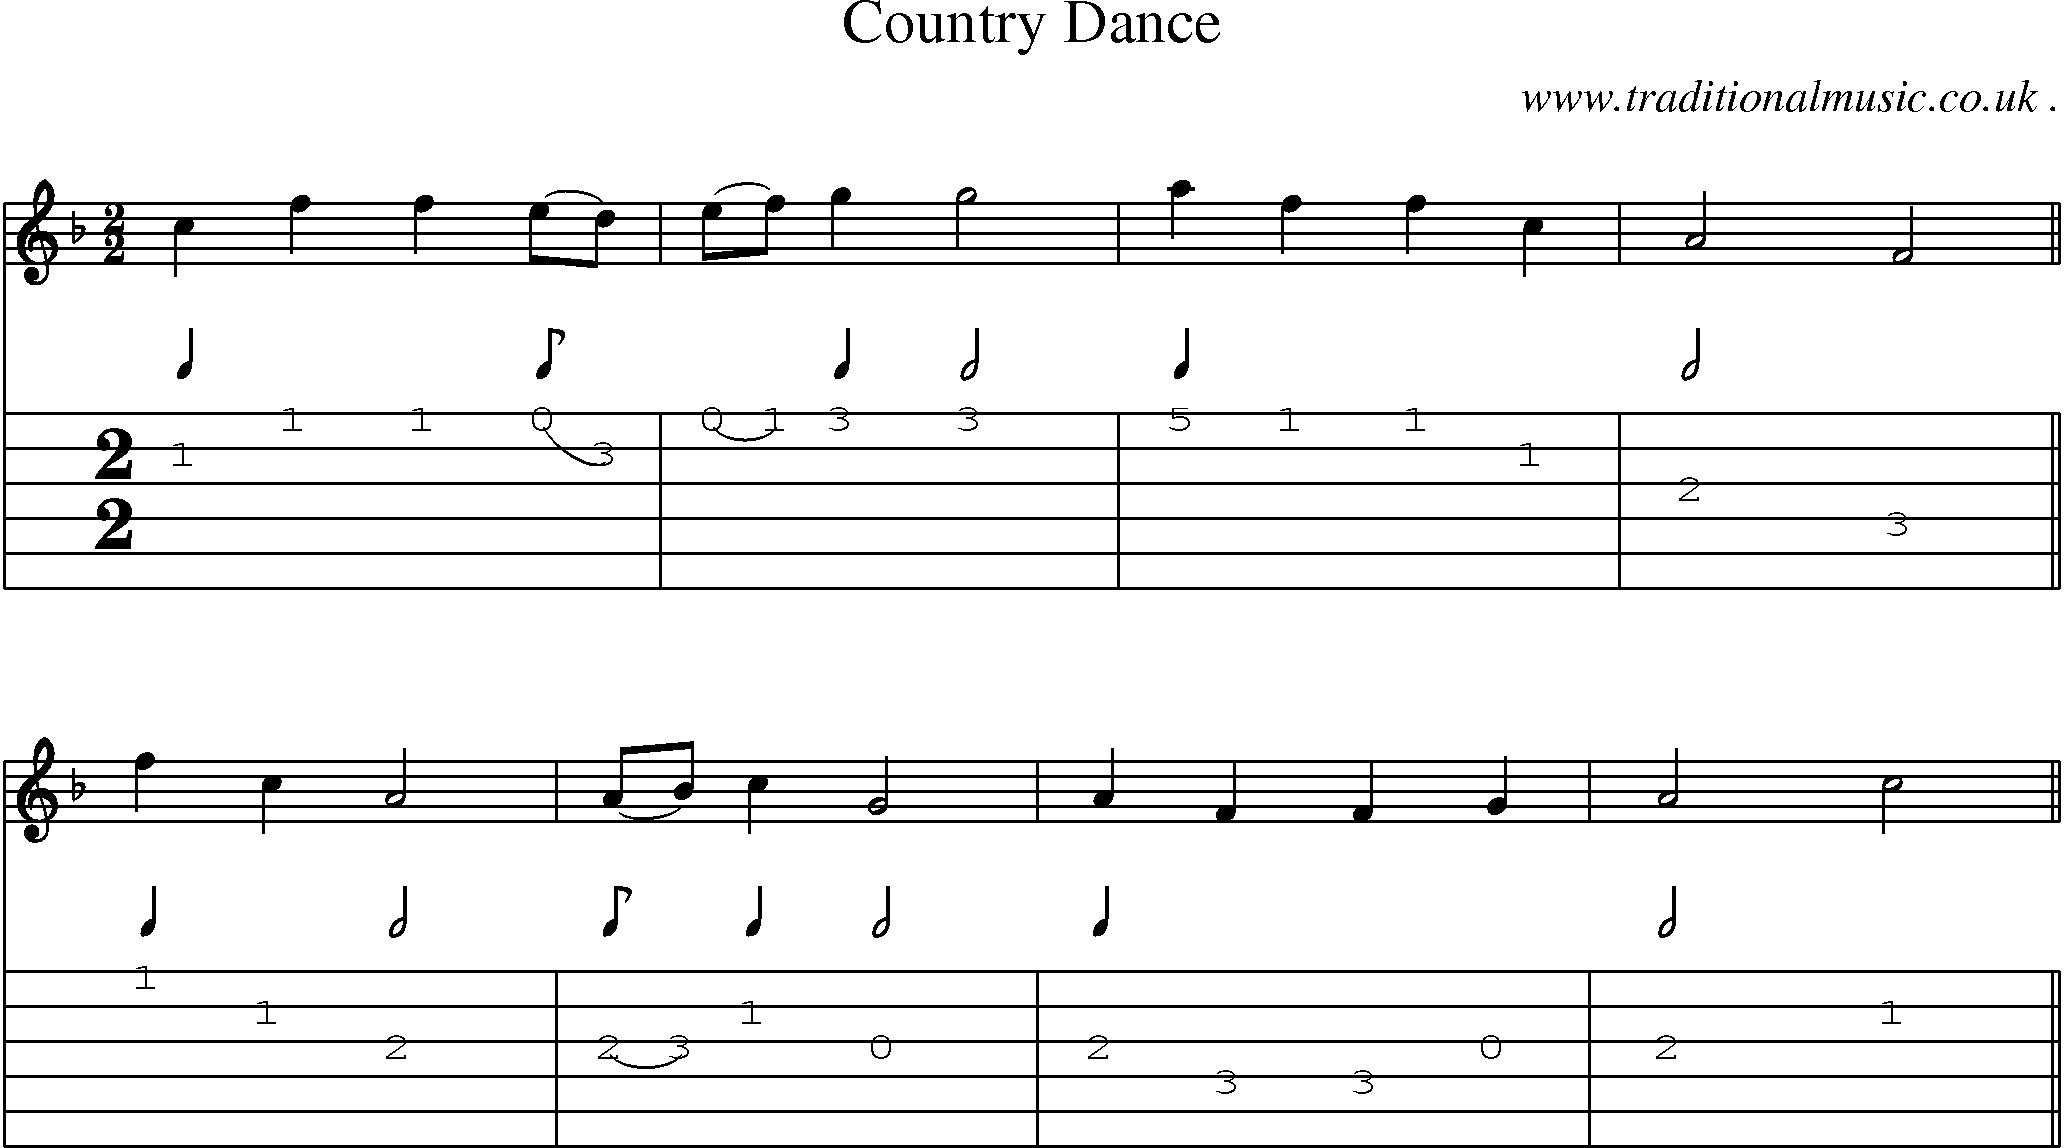 Folk and Traditional Music, Sheet-Music, Guitar tab, mp3 audio, midi and PDF for: Country Dance